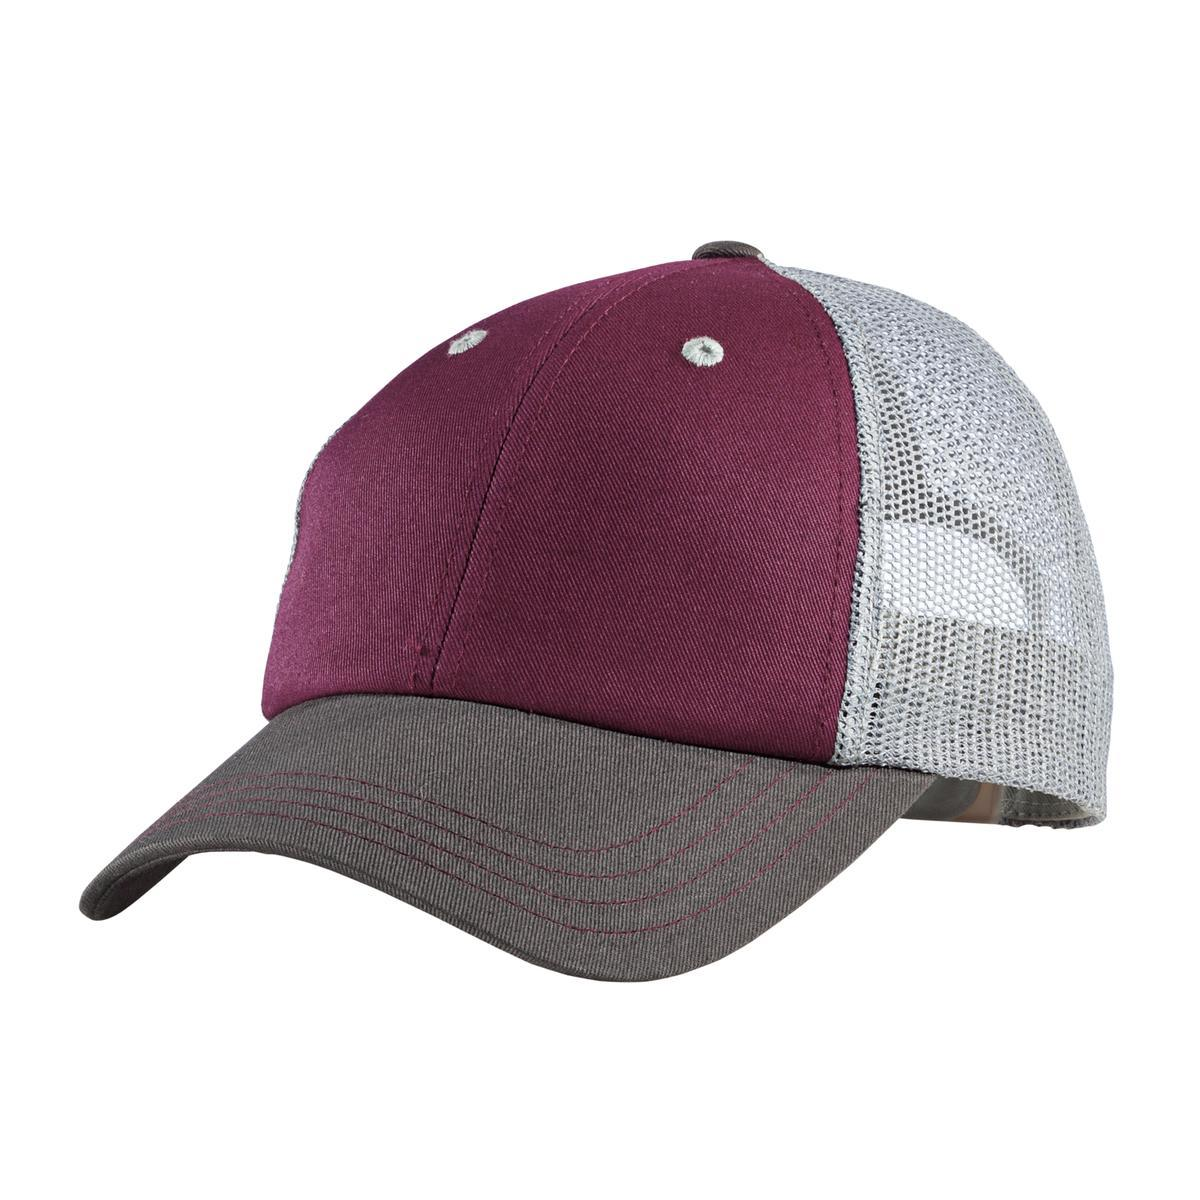 Maroon/Charcoal/Grey - District DT616